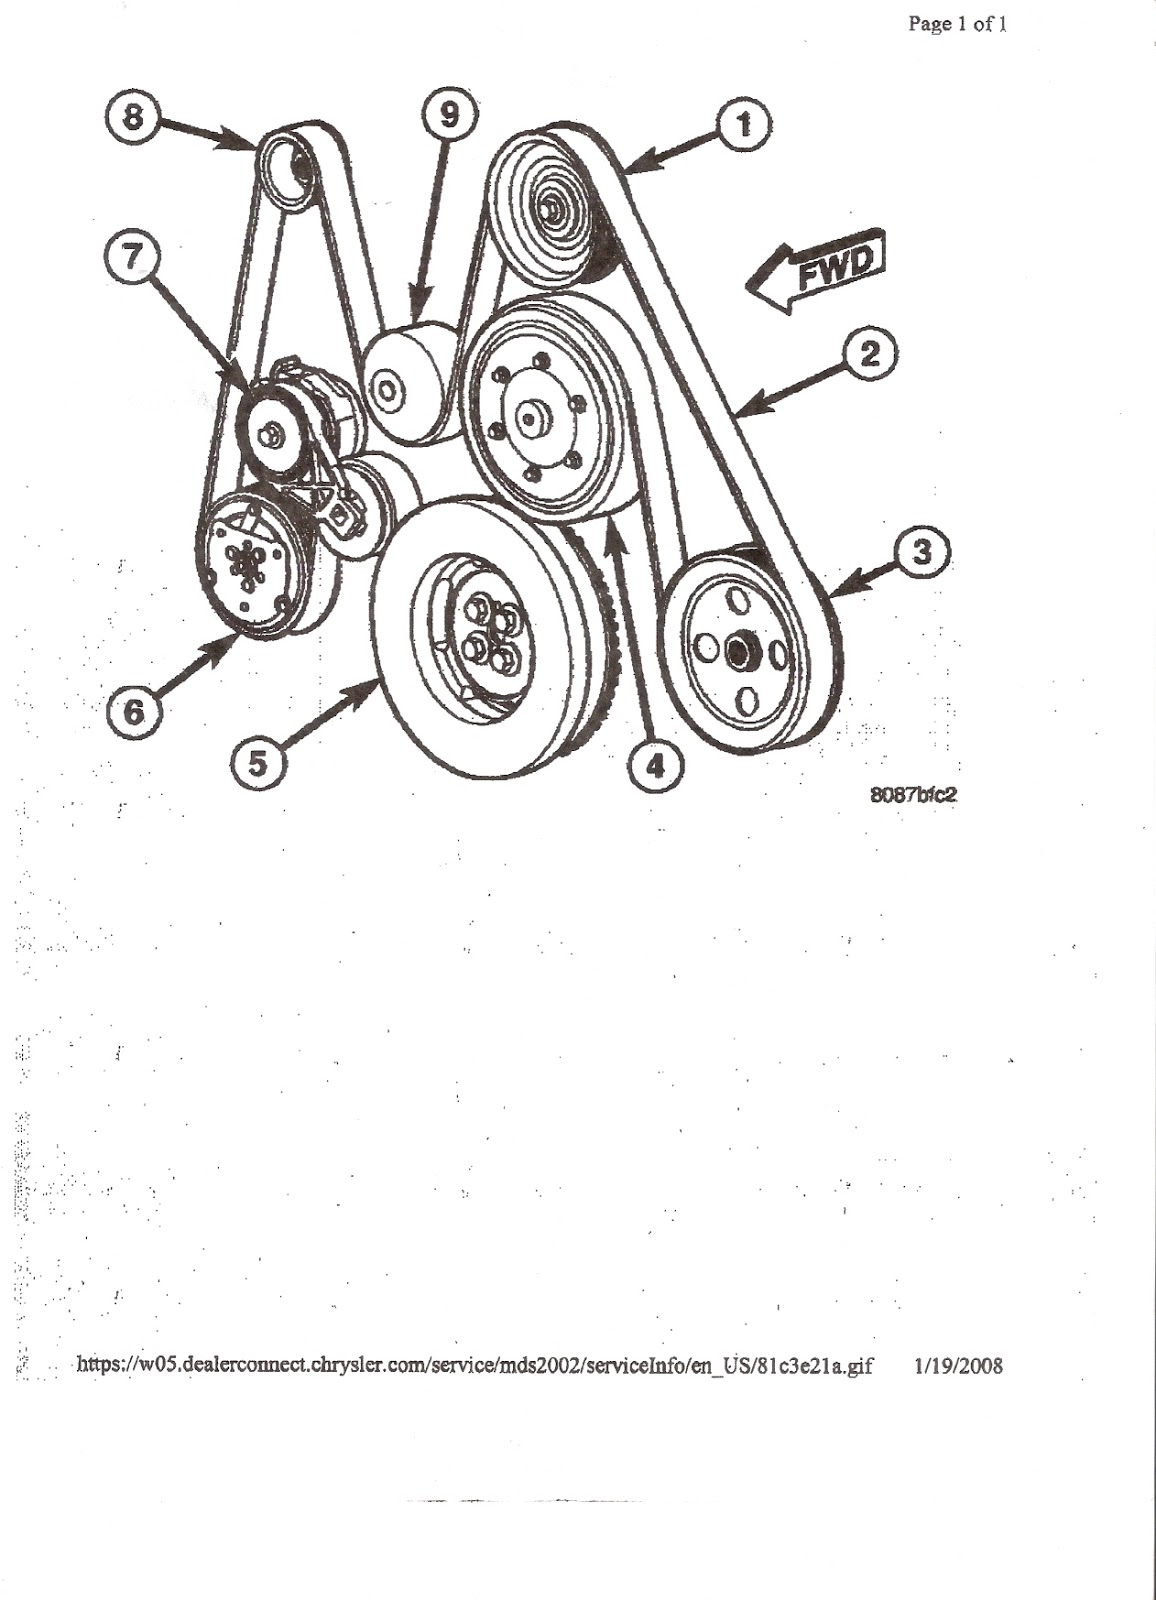 T19444991 Serpentine belt diagram 2005 chevy also 2012 Mercedes Benz Sprinter Diagram besides 2004 Dodge Ram 1500 Hemi 5 7l Serpentine Belt Diagram moreover T12965576 Need diagram installing serpentine belt likewise 2008 Jeep  pass Serpentine Belt Diagram. on 2006 sprinter belt routing diagram